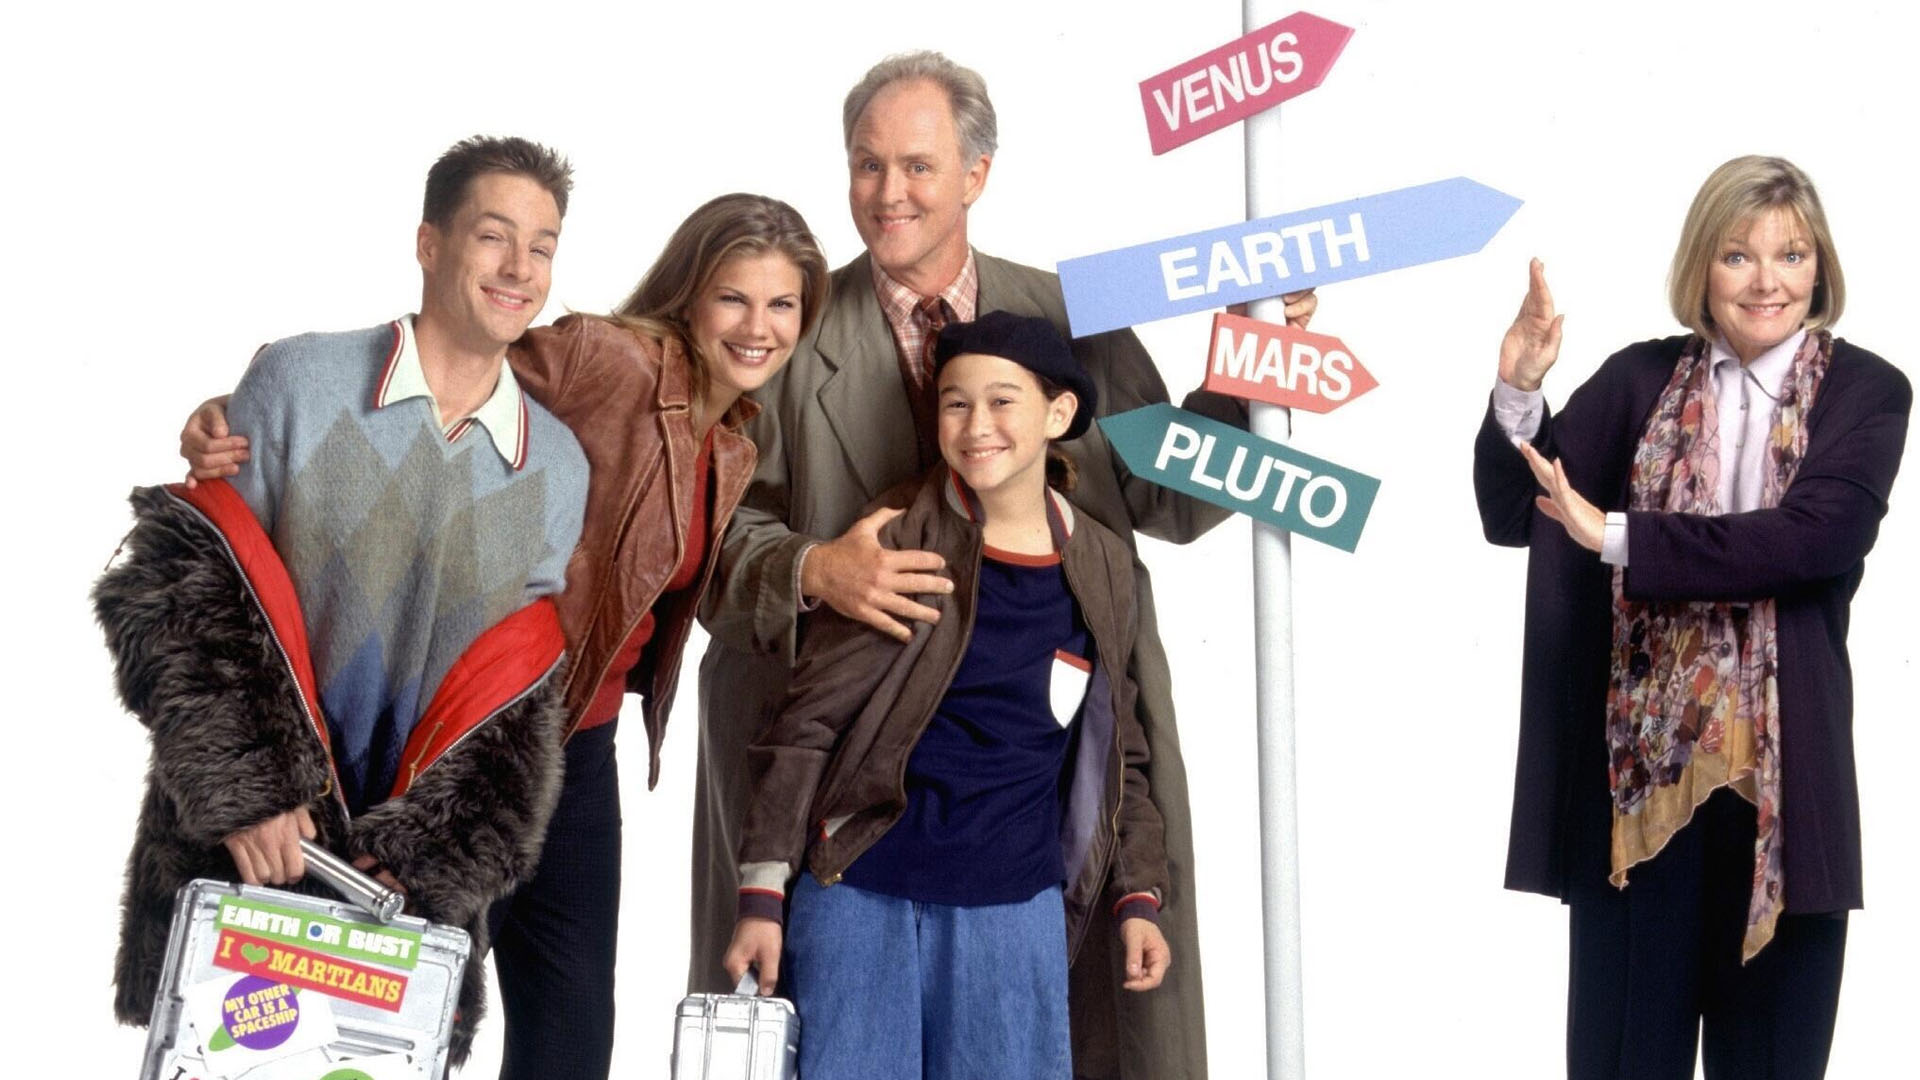 Nice Images Collection: 3rd Rock From The Sun Desktop Wallpapers